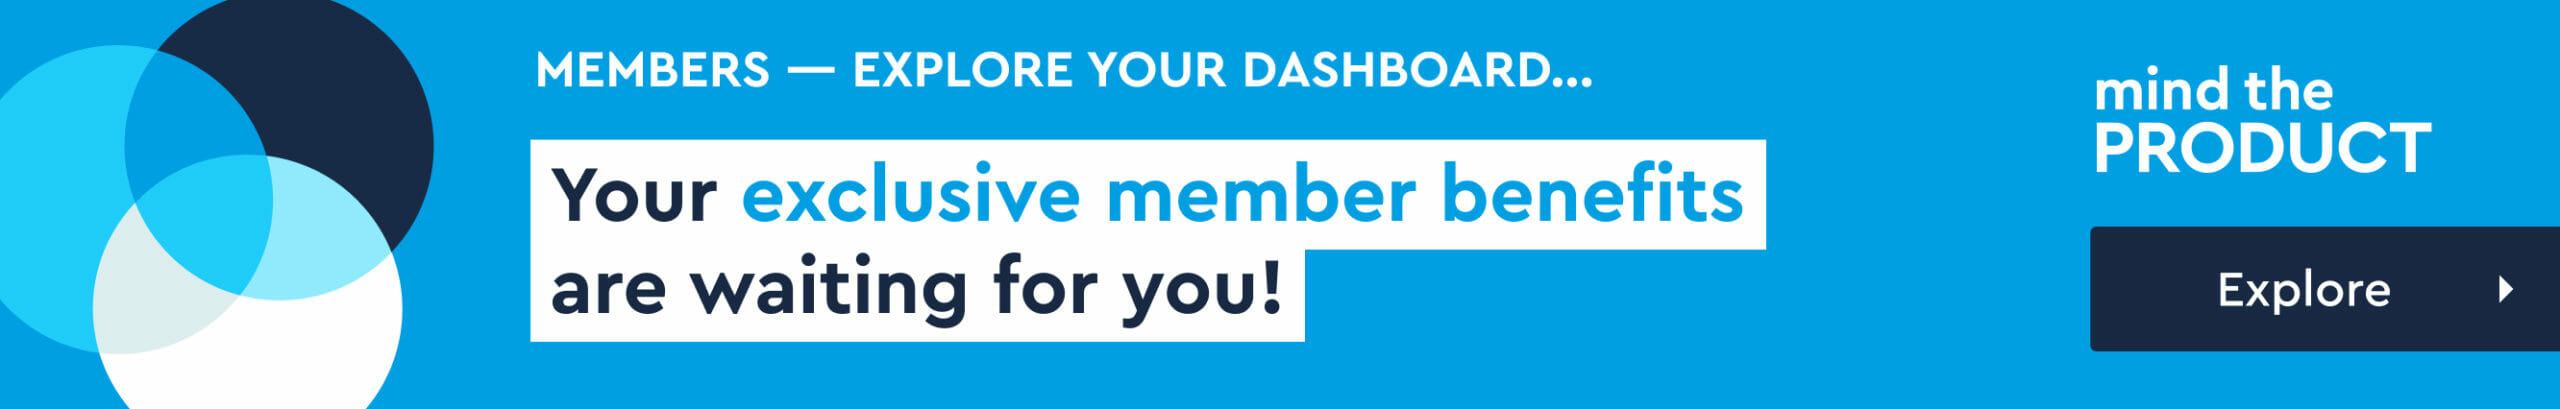 5 Tips for Product Managers: Membership Only Content Sneak Peek (August)